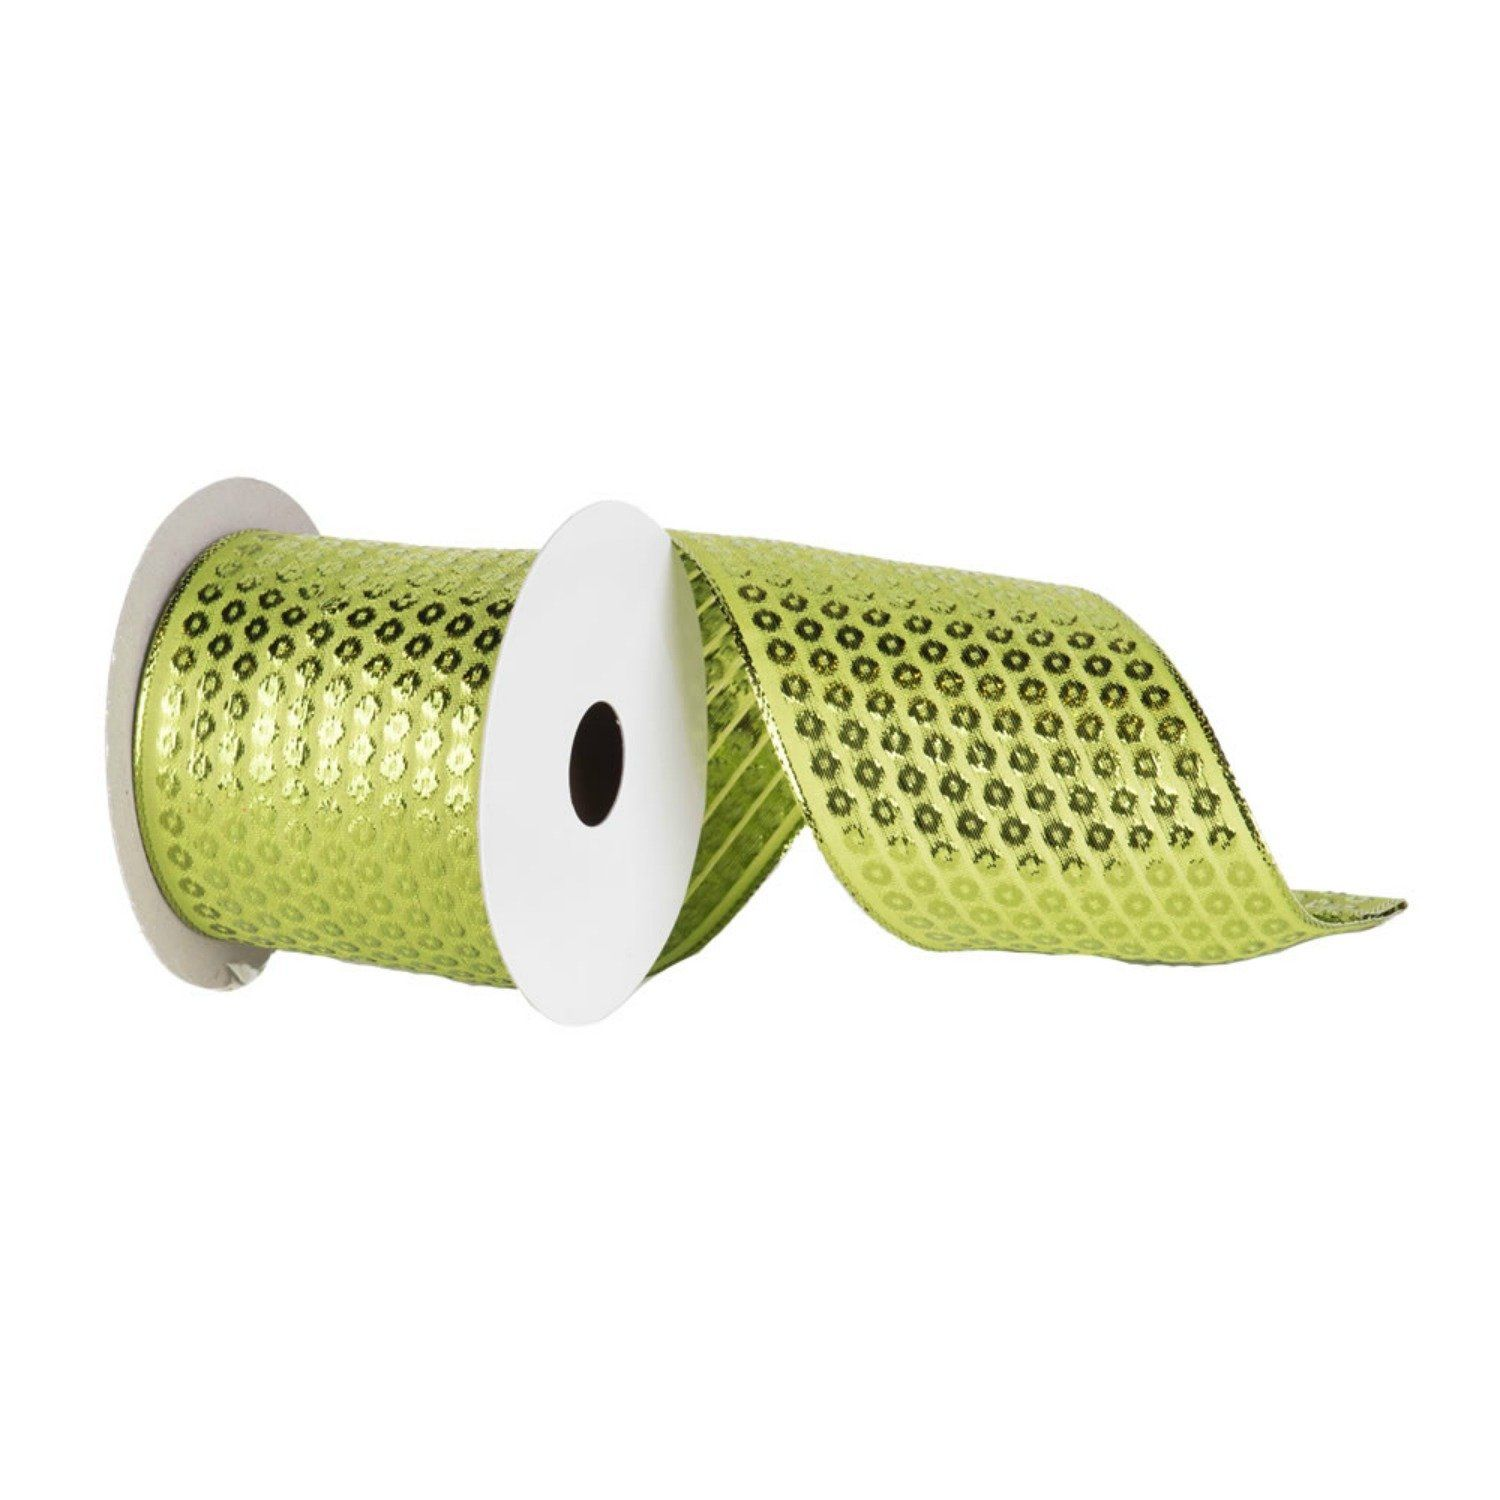 2 5 Metallic Dot Ribbon Lime Green 10 Yards Michelle S Adoorable Creations In 2019 Wreath Supplies Lime Easy Christmas Crafts